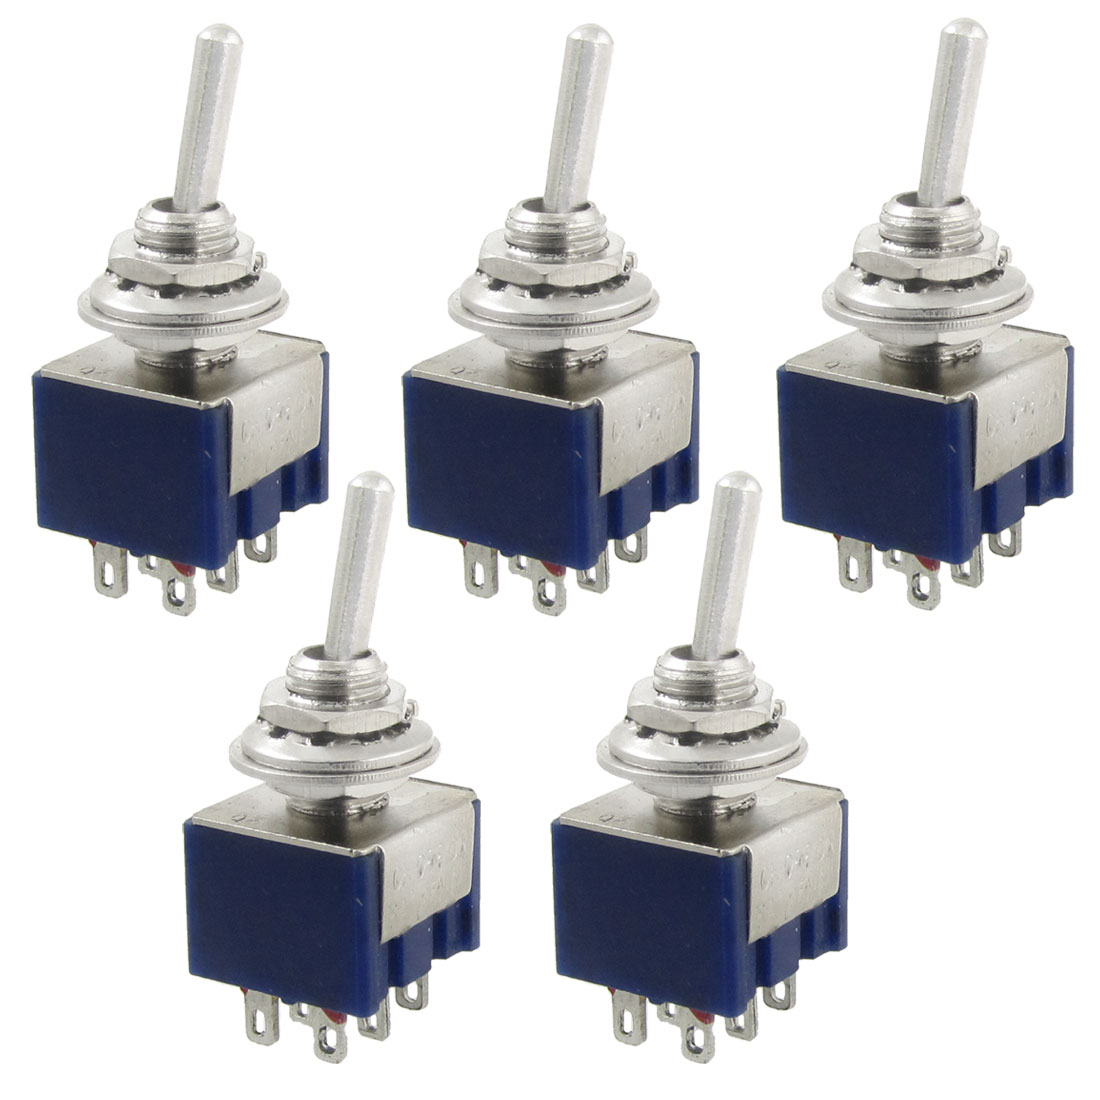 5 Pcs AC 125V 6A Amps ON/OFF/ON 3 Position DPDT Toggle Switch